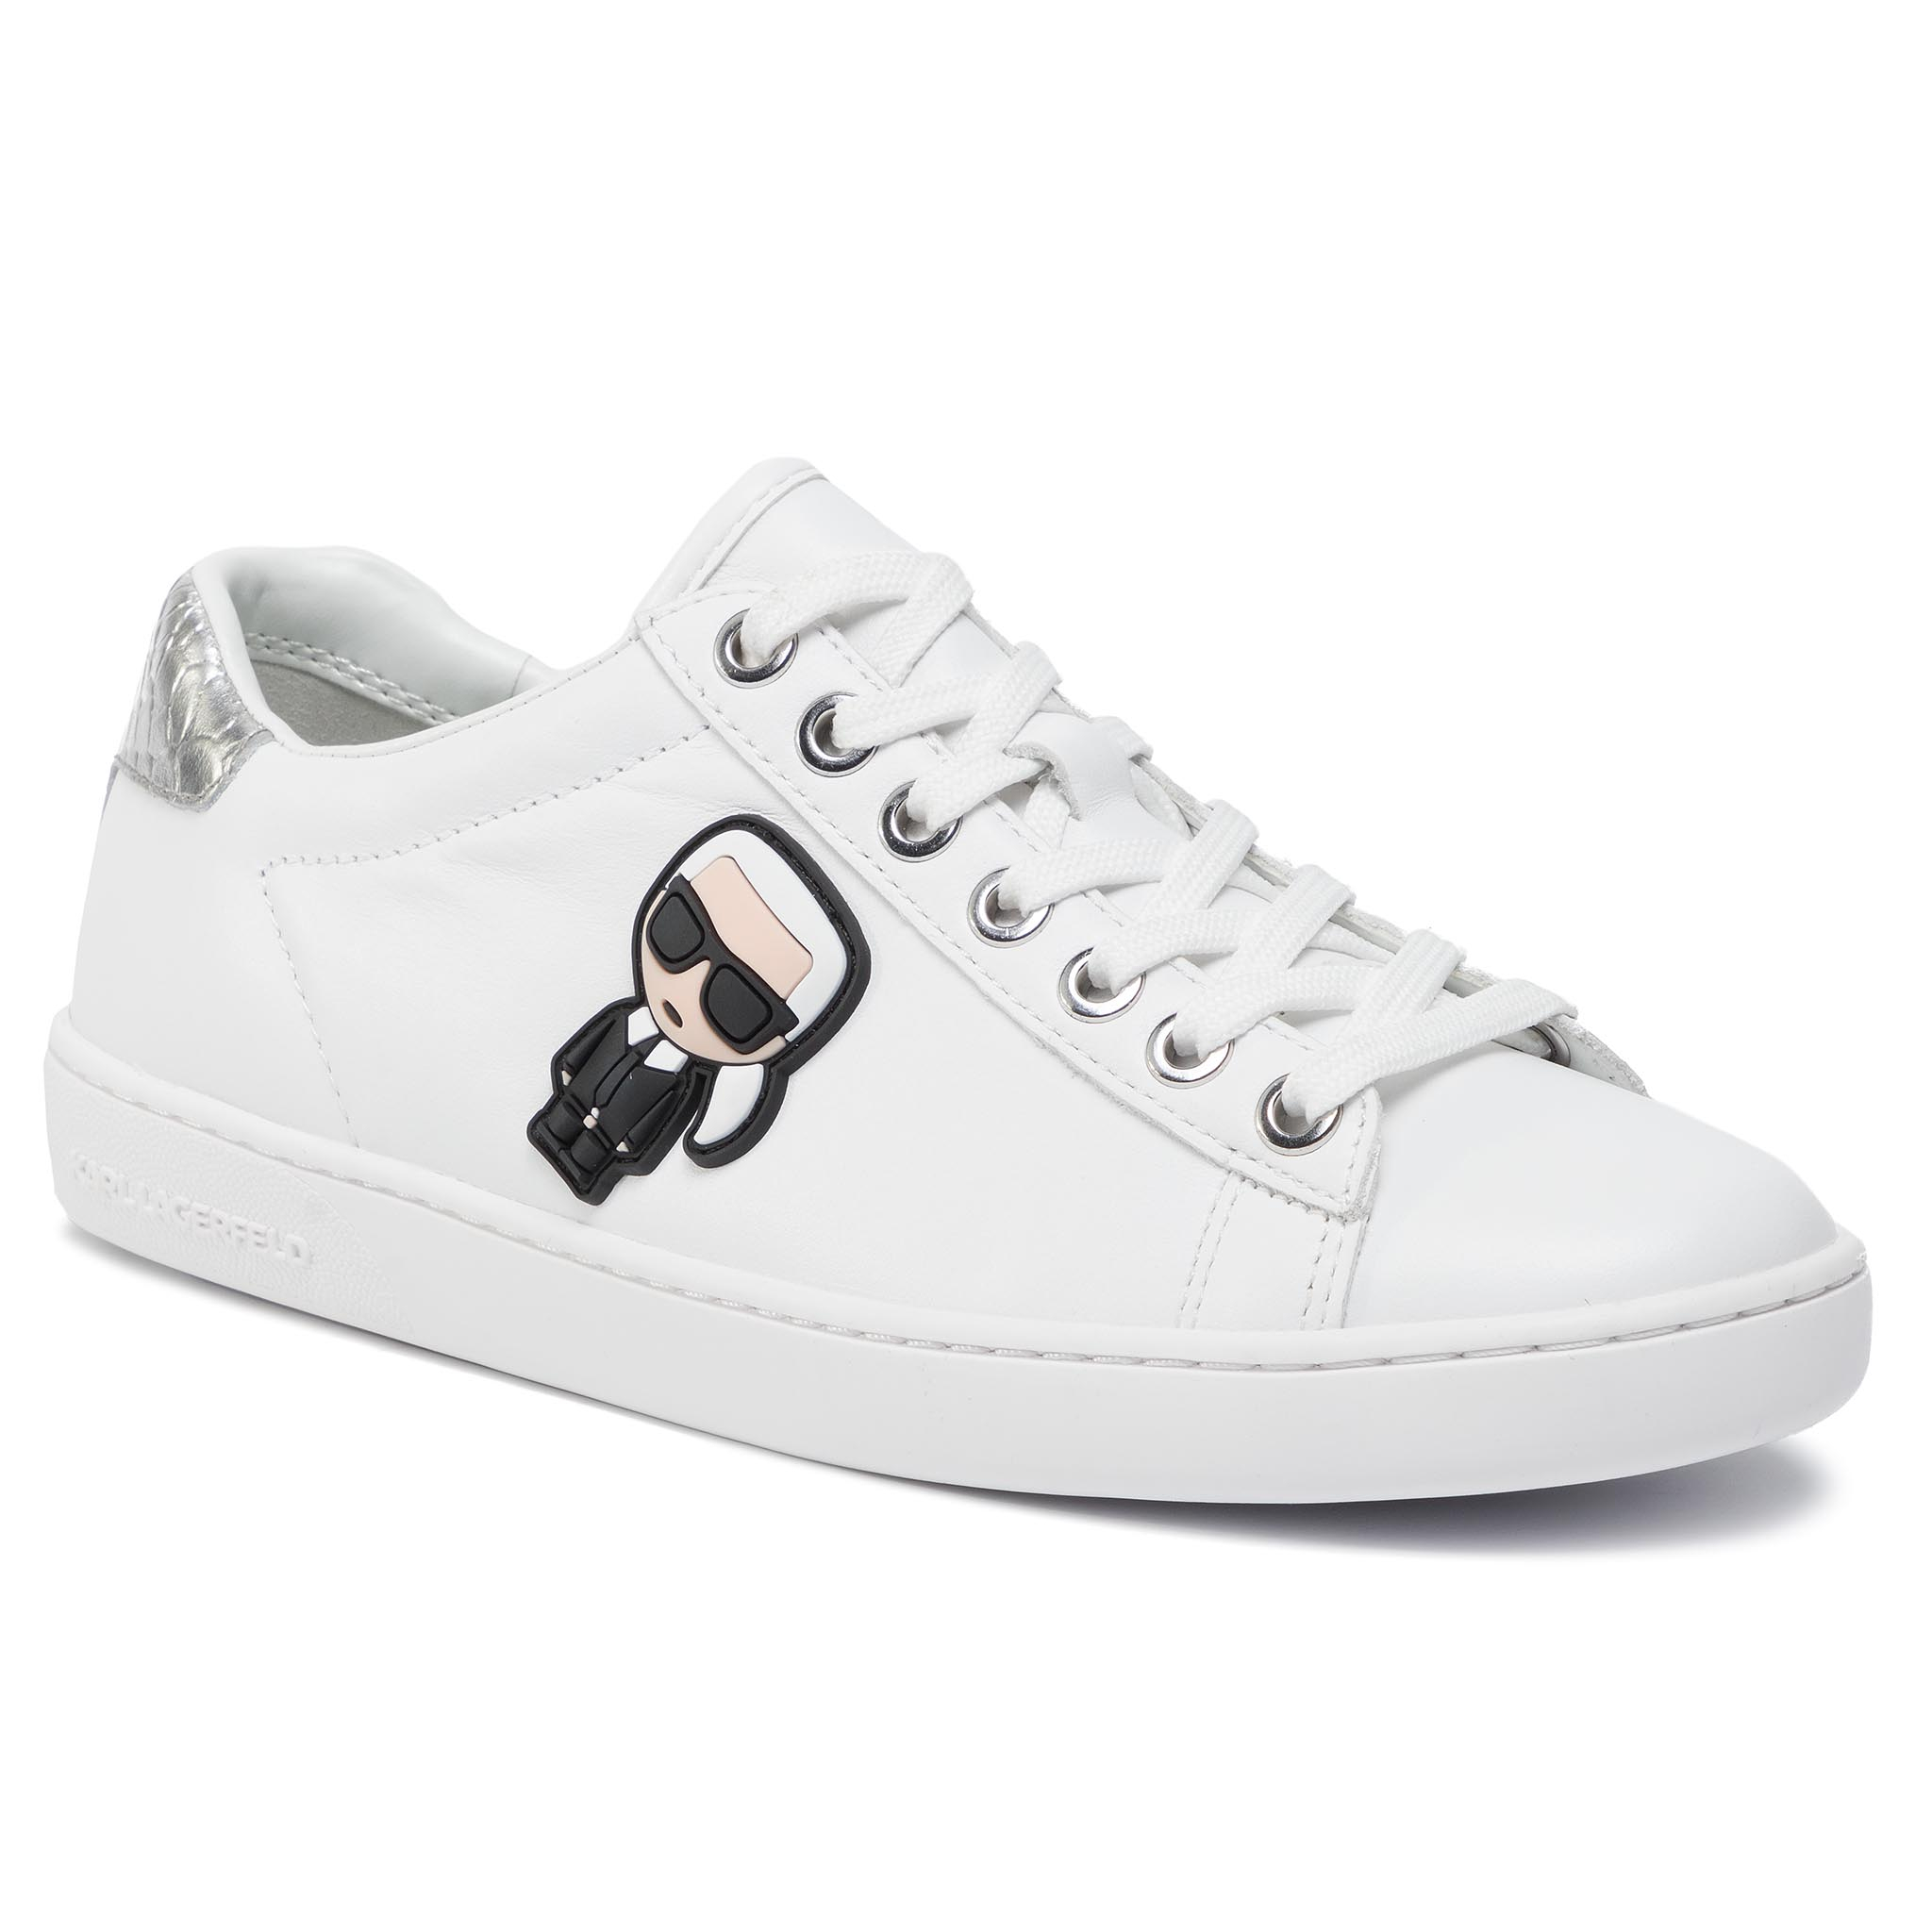 Sneakers KARL LAGERFELD - KL61230 White Lthr W/Silver